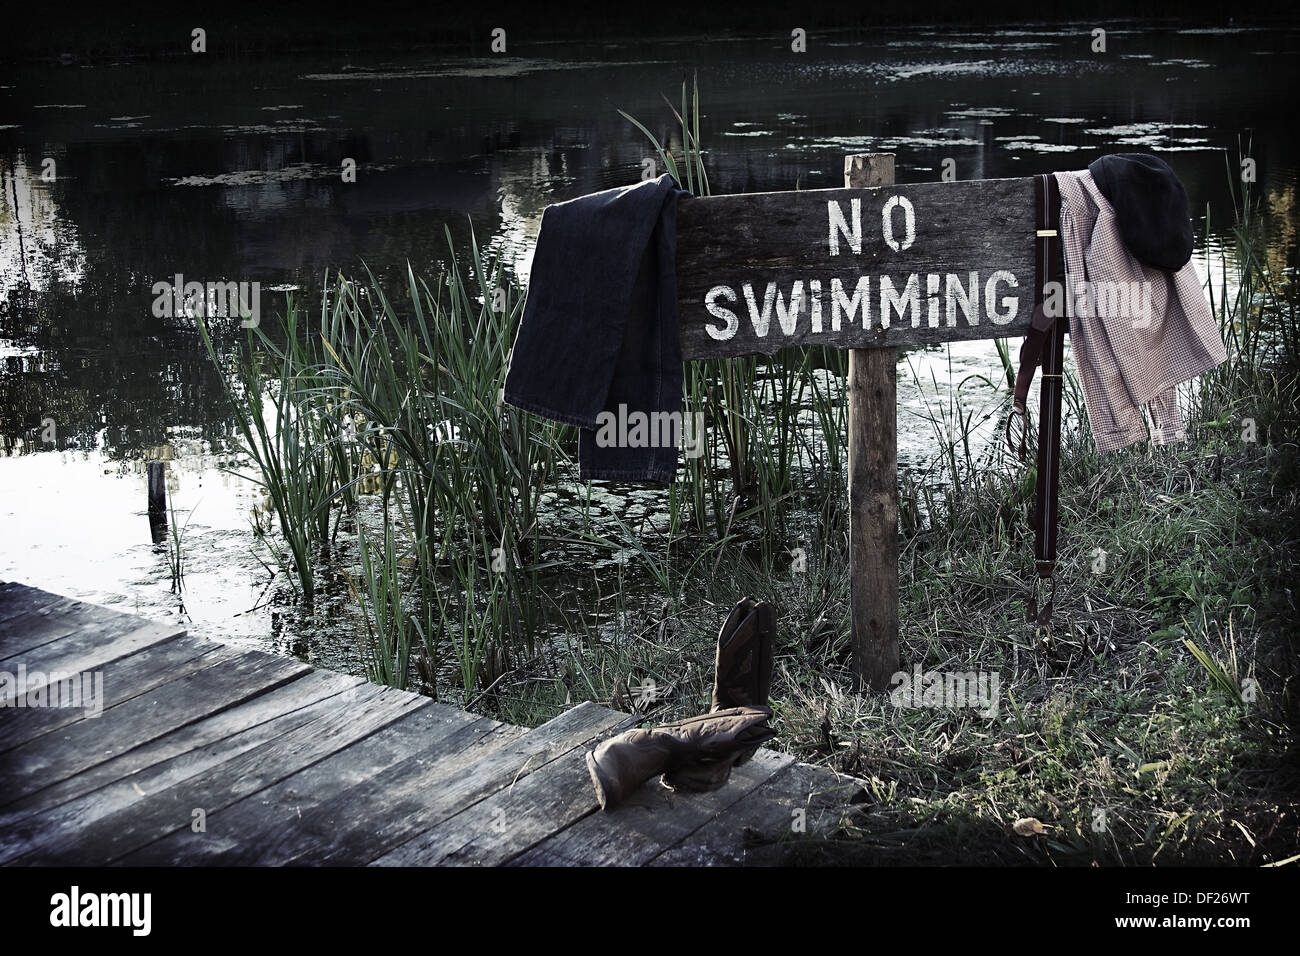 no-swimming-sign-by-a-pond-with-vintage-